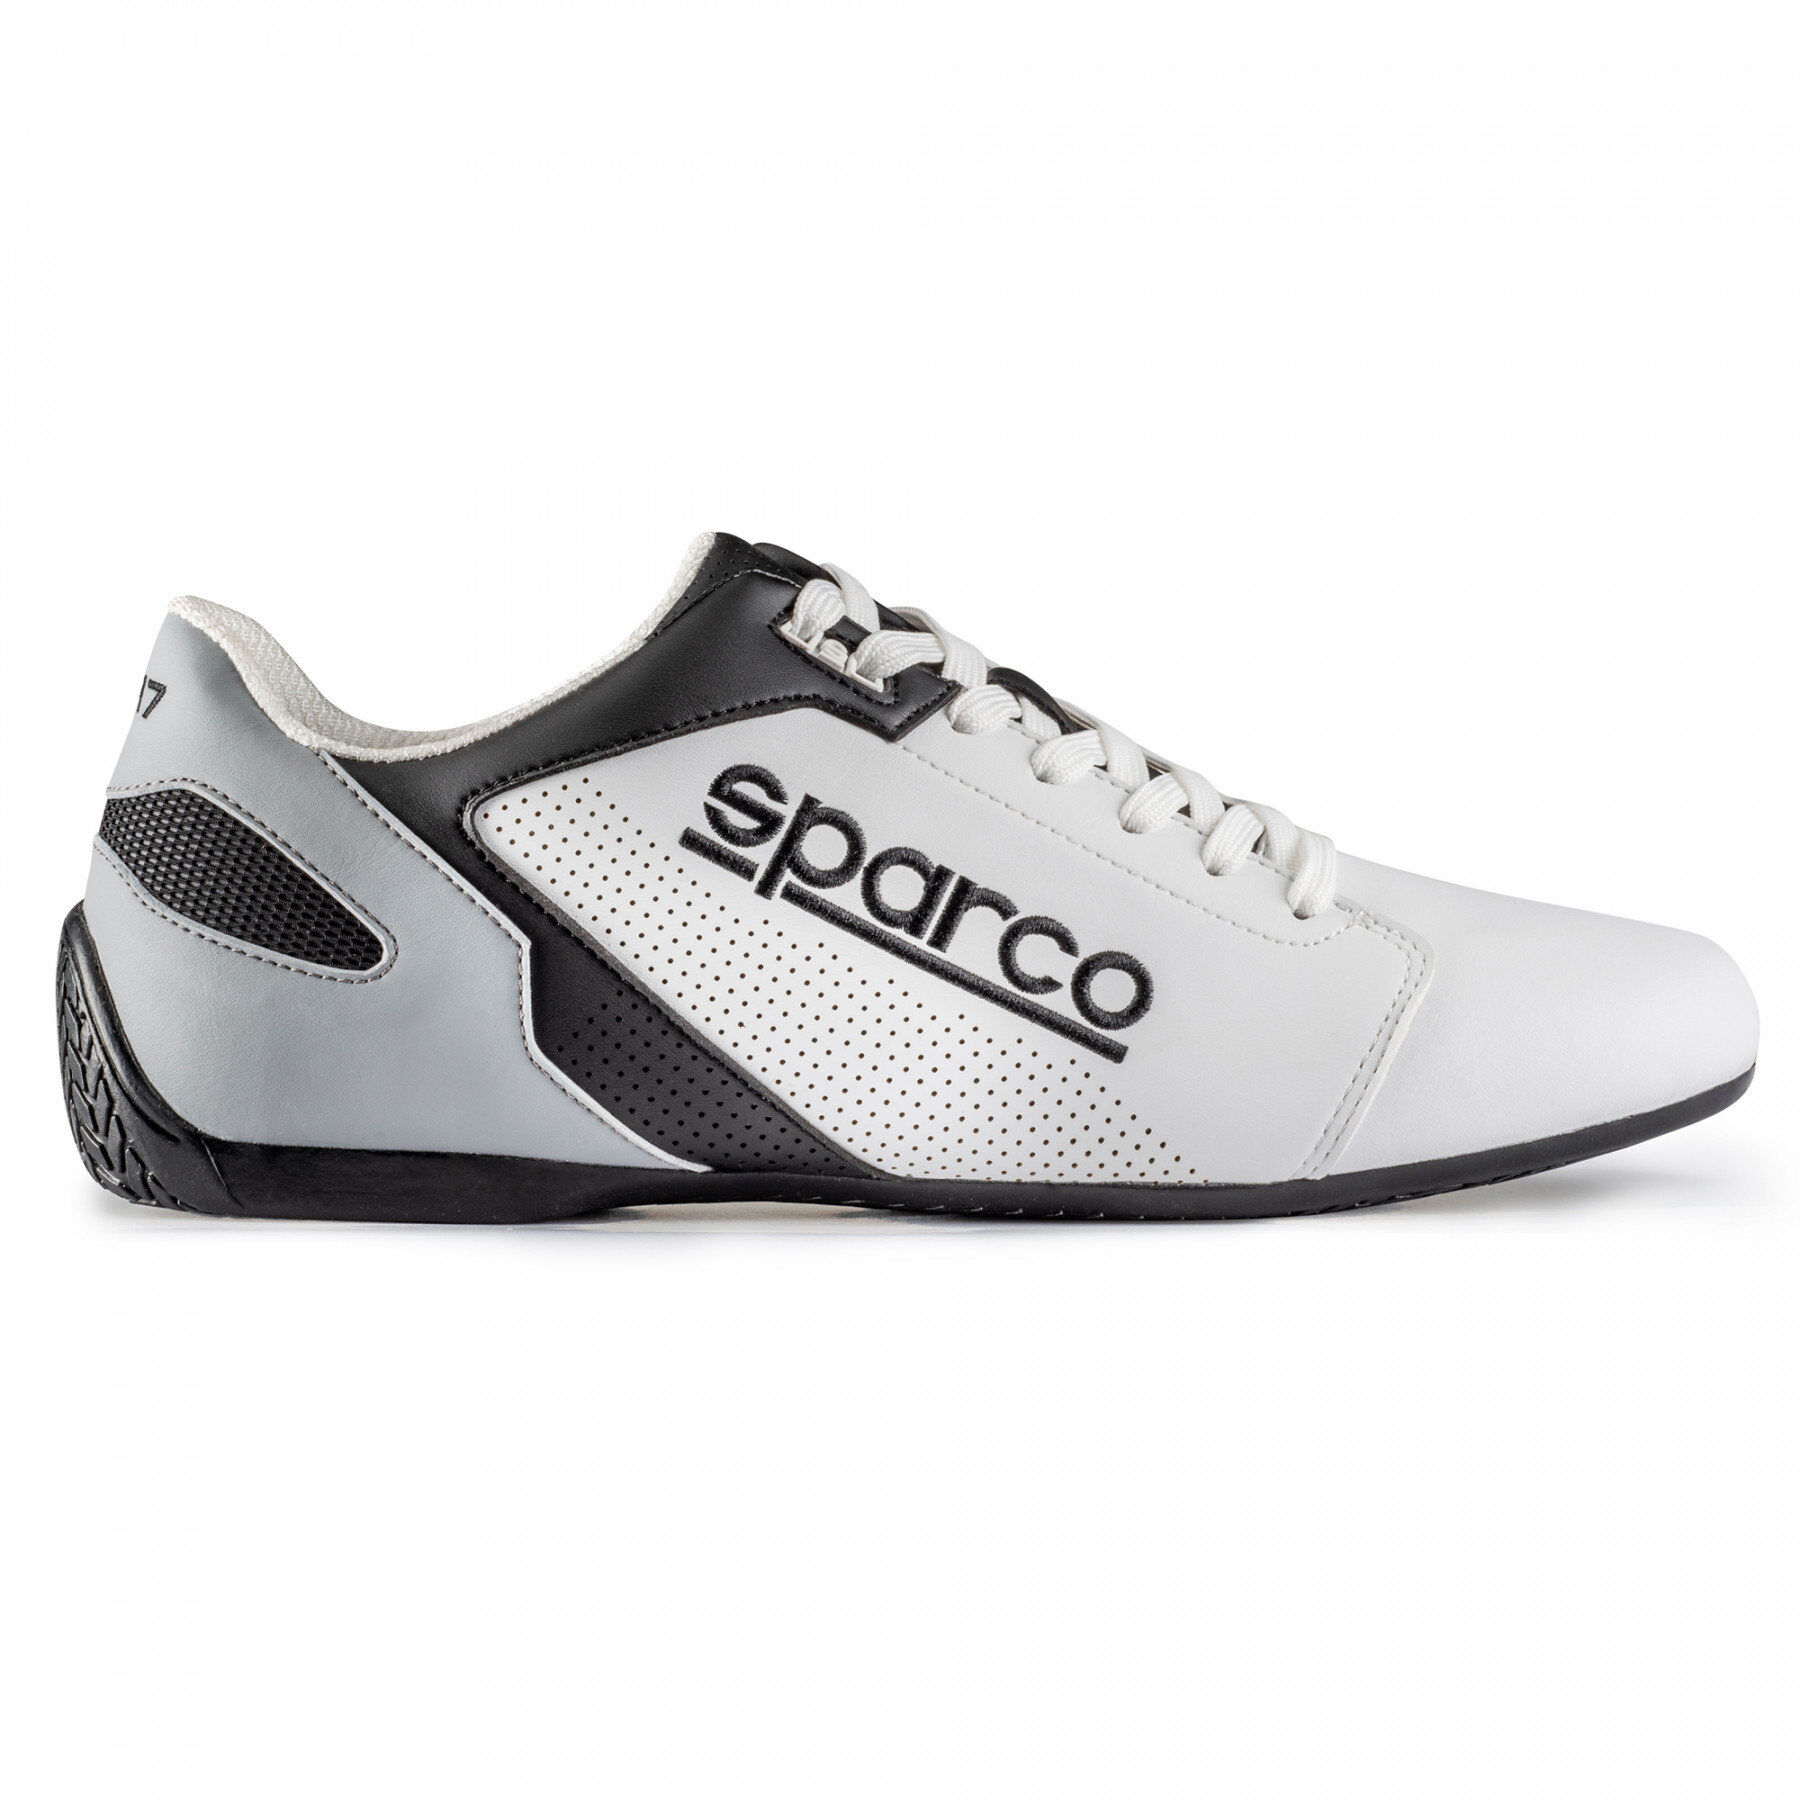 Sparco casual schoen met veters